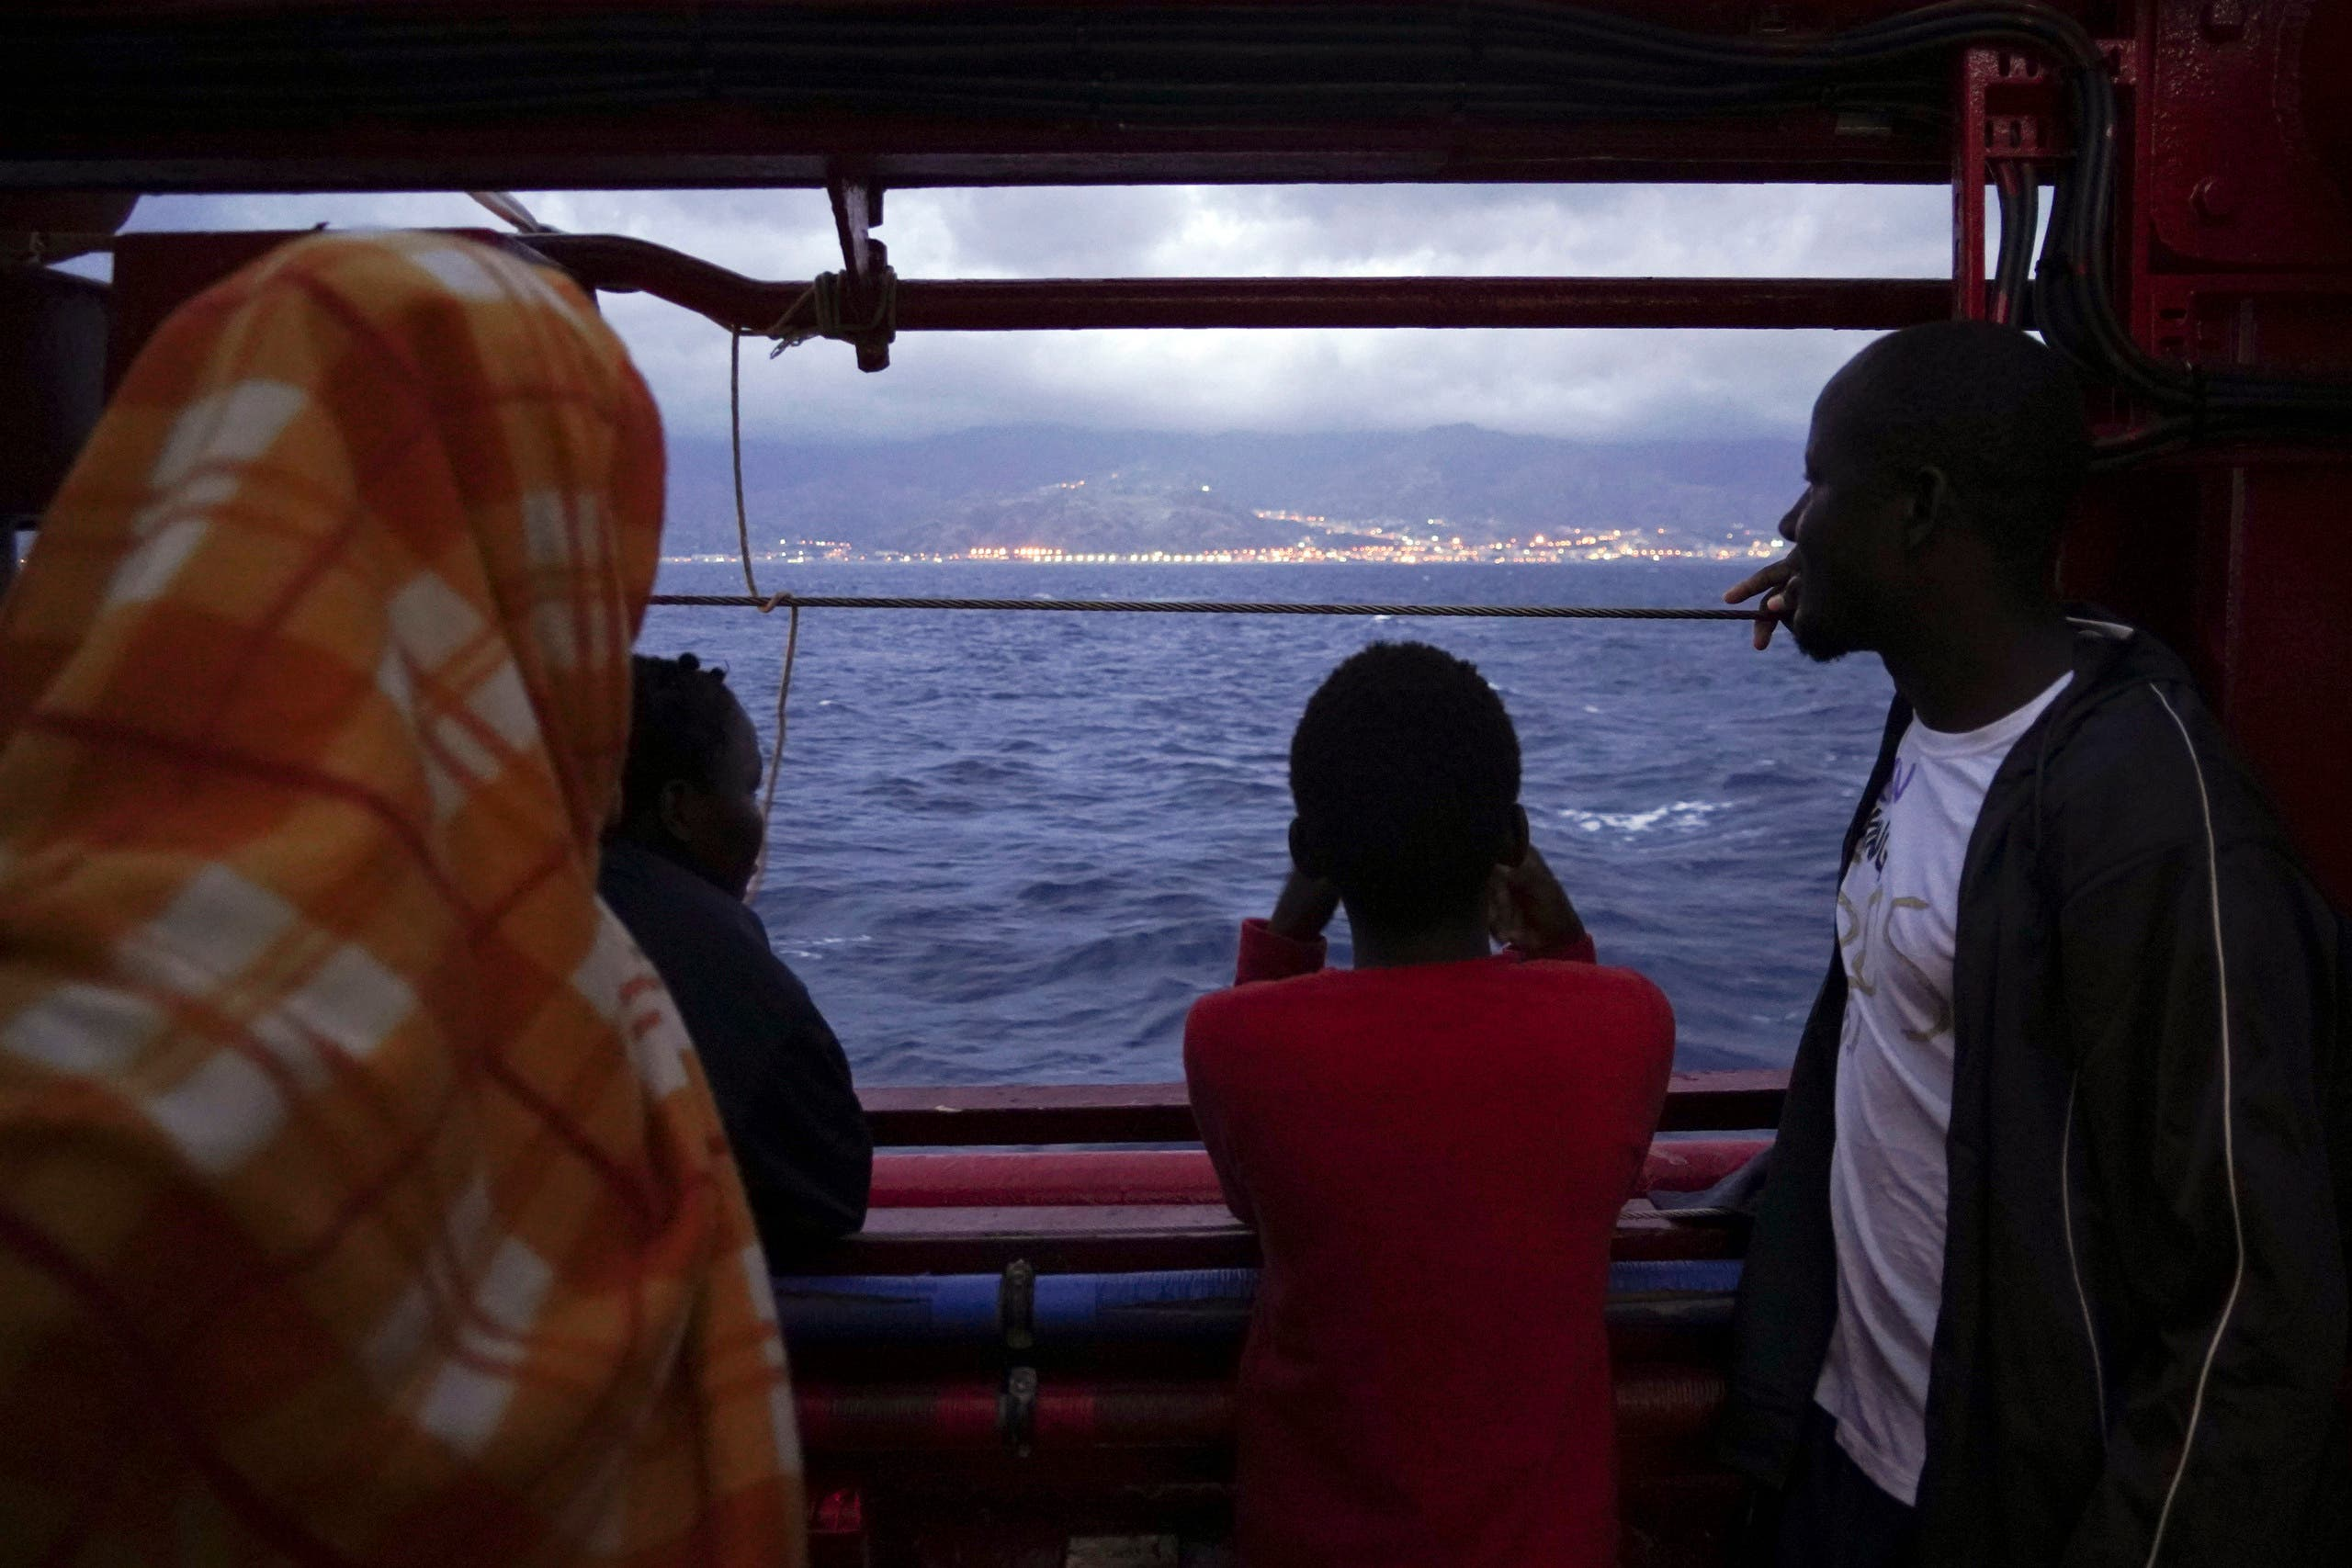 Migrants look at the Italian shoreline from aboard the Ocean Viking as it approaches the Sicilian port of Messina, southern Italy, on September 24, 2019. (AP)